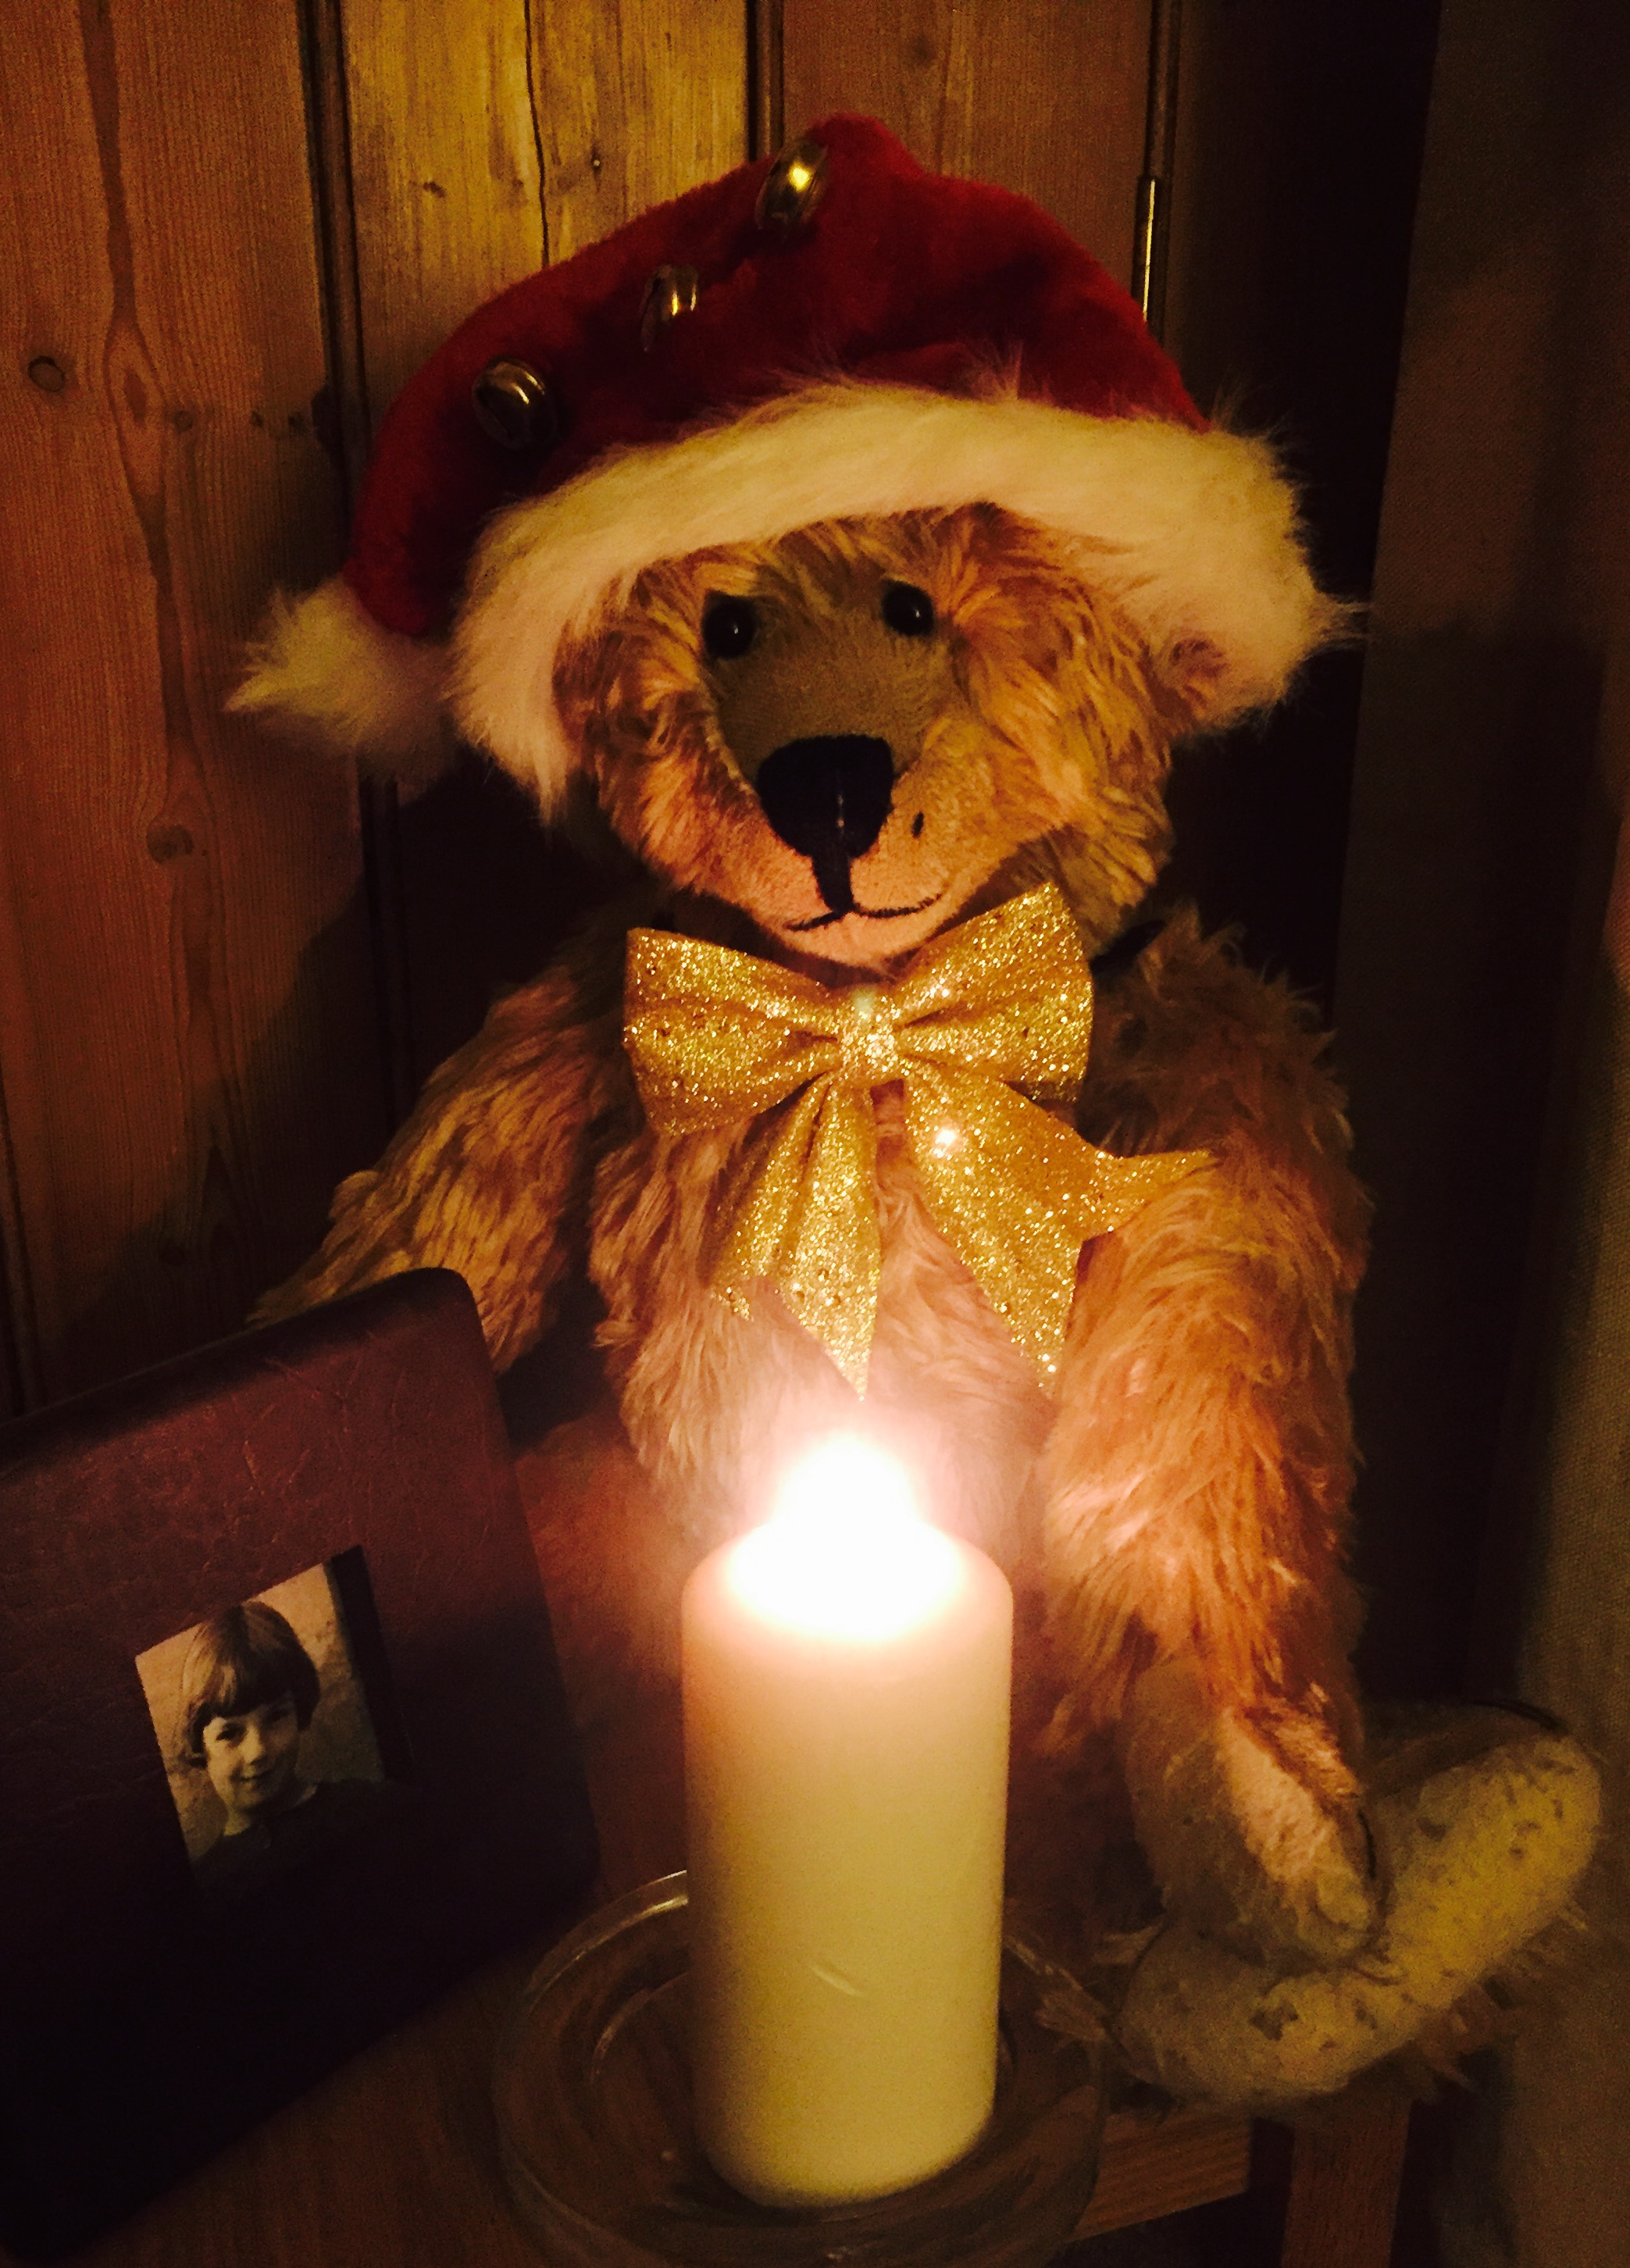 Bertie wearing a Christmas Santa hat sat looking at a lit candle.